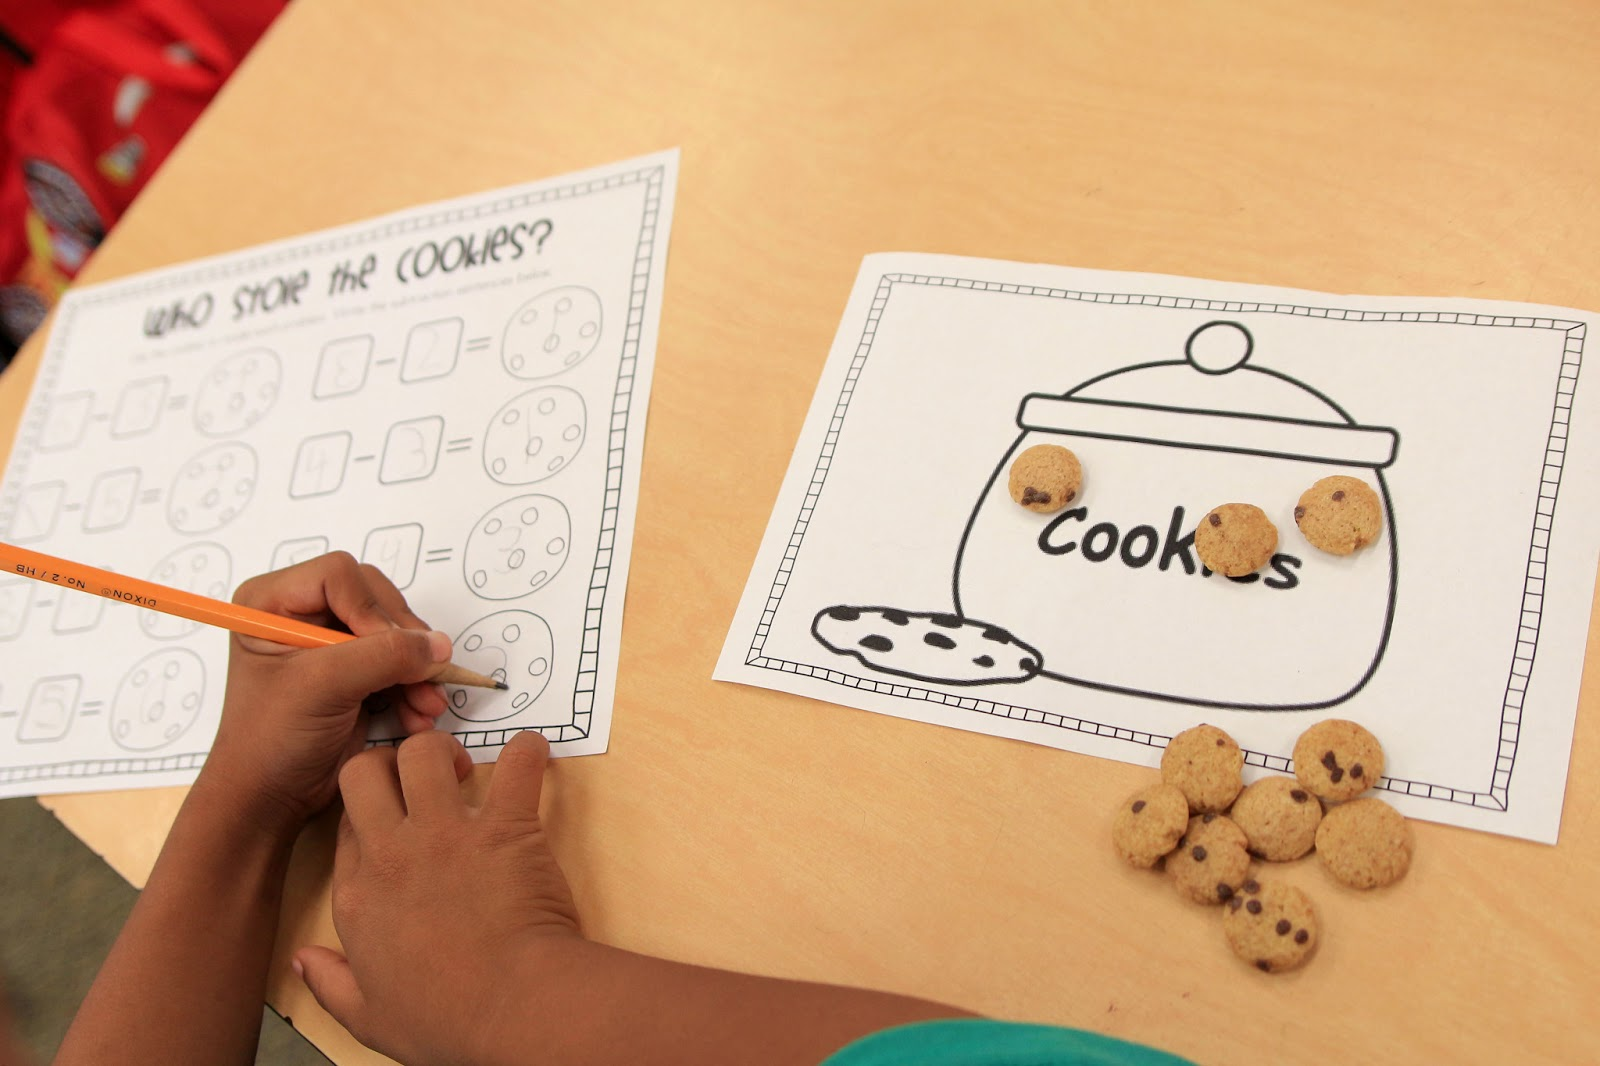 Worksheet Teaching Subtraction In Kindergarten mrs riccas kindergarten subtraction action freebies take the work mats home so they could practice with their cereal in morning love it click here for my cookie subtrac